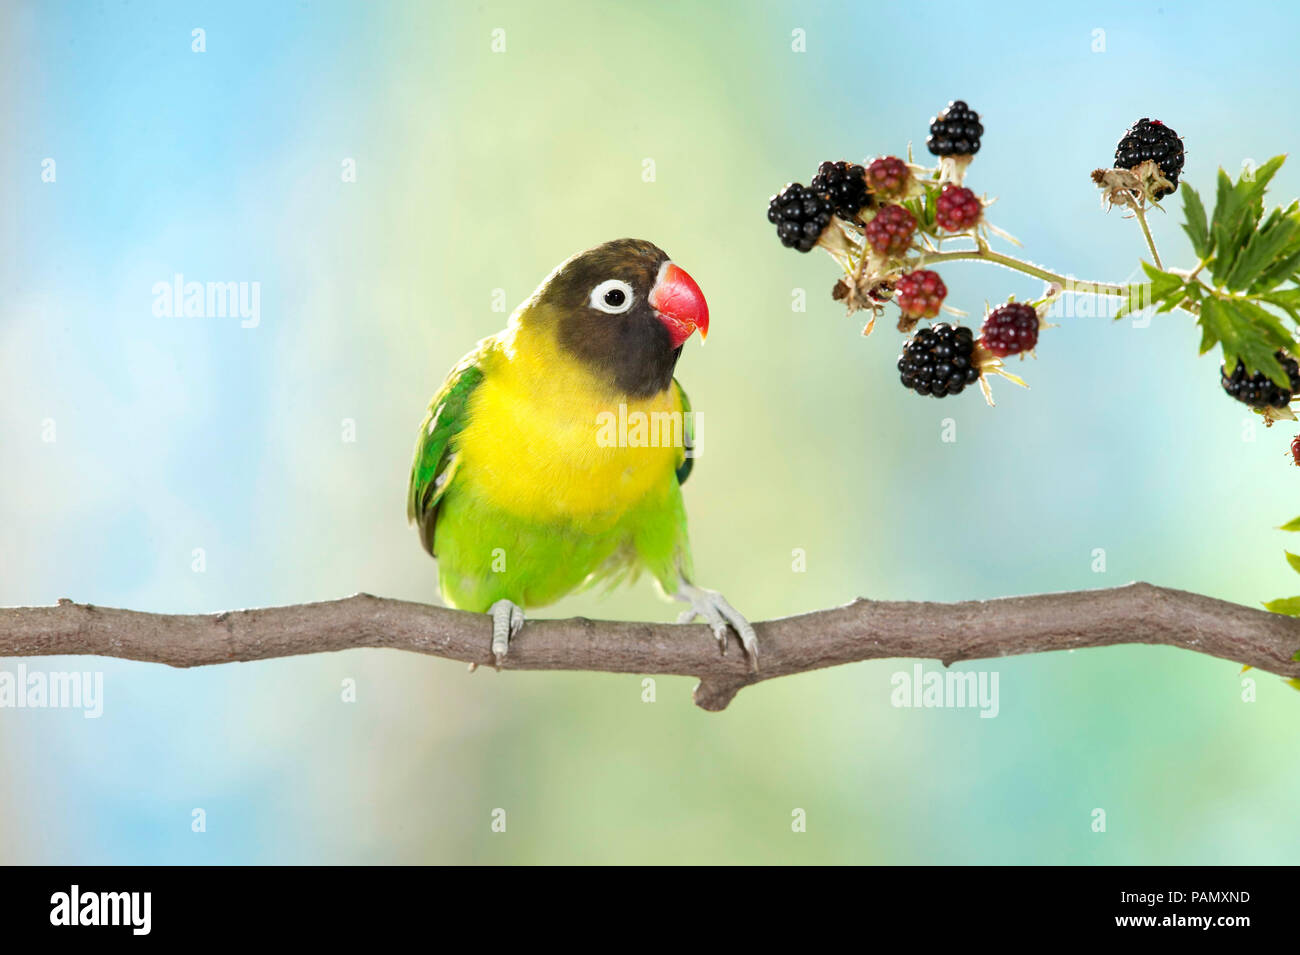 Masked Lovebird (Agapornis personatus). Adult perched on a twig next to ripe brambles. Germany - Stock Image